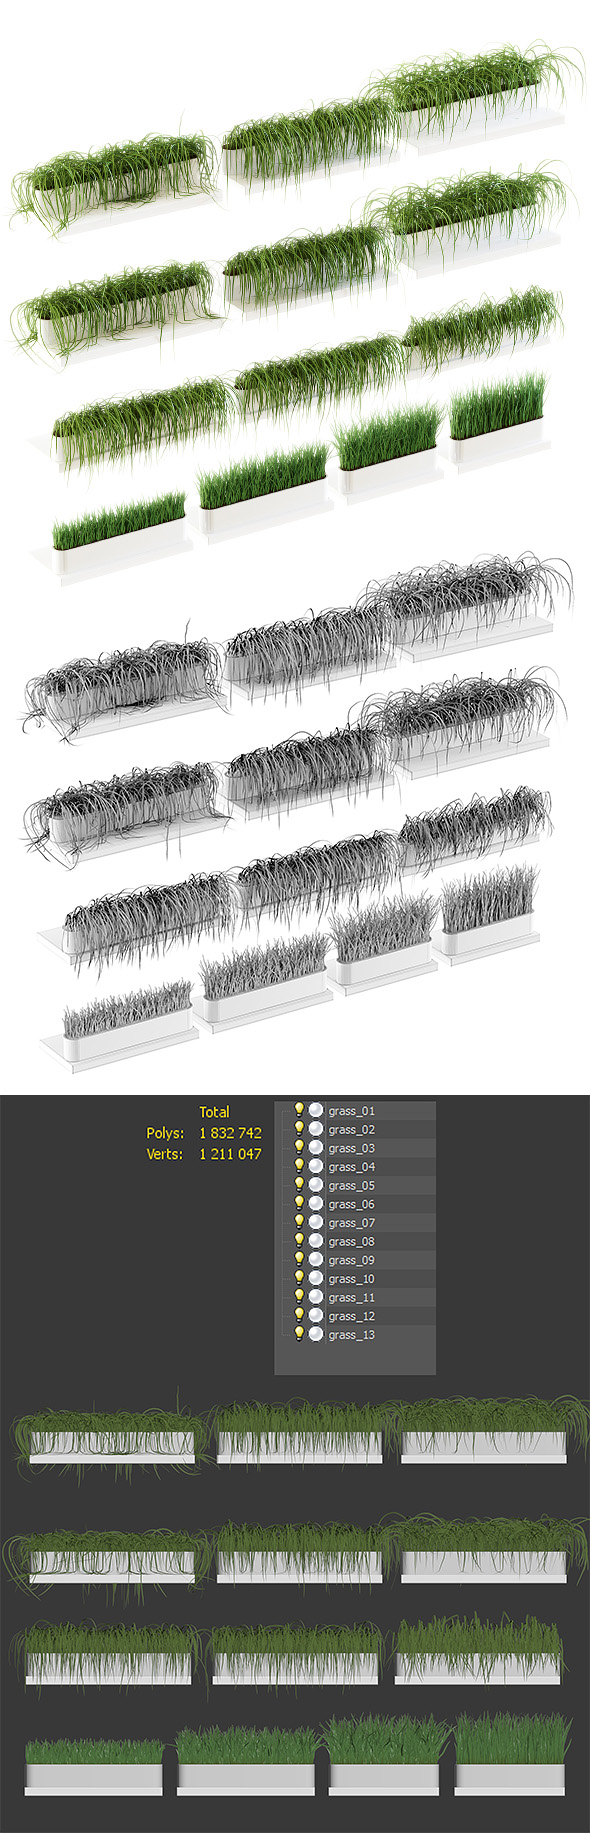 3DOcean Grass on the shelves of 13 models 21033953